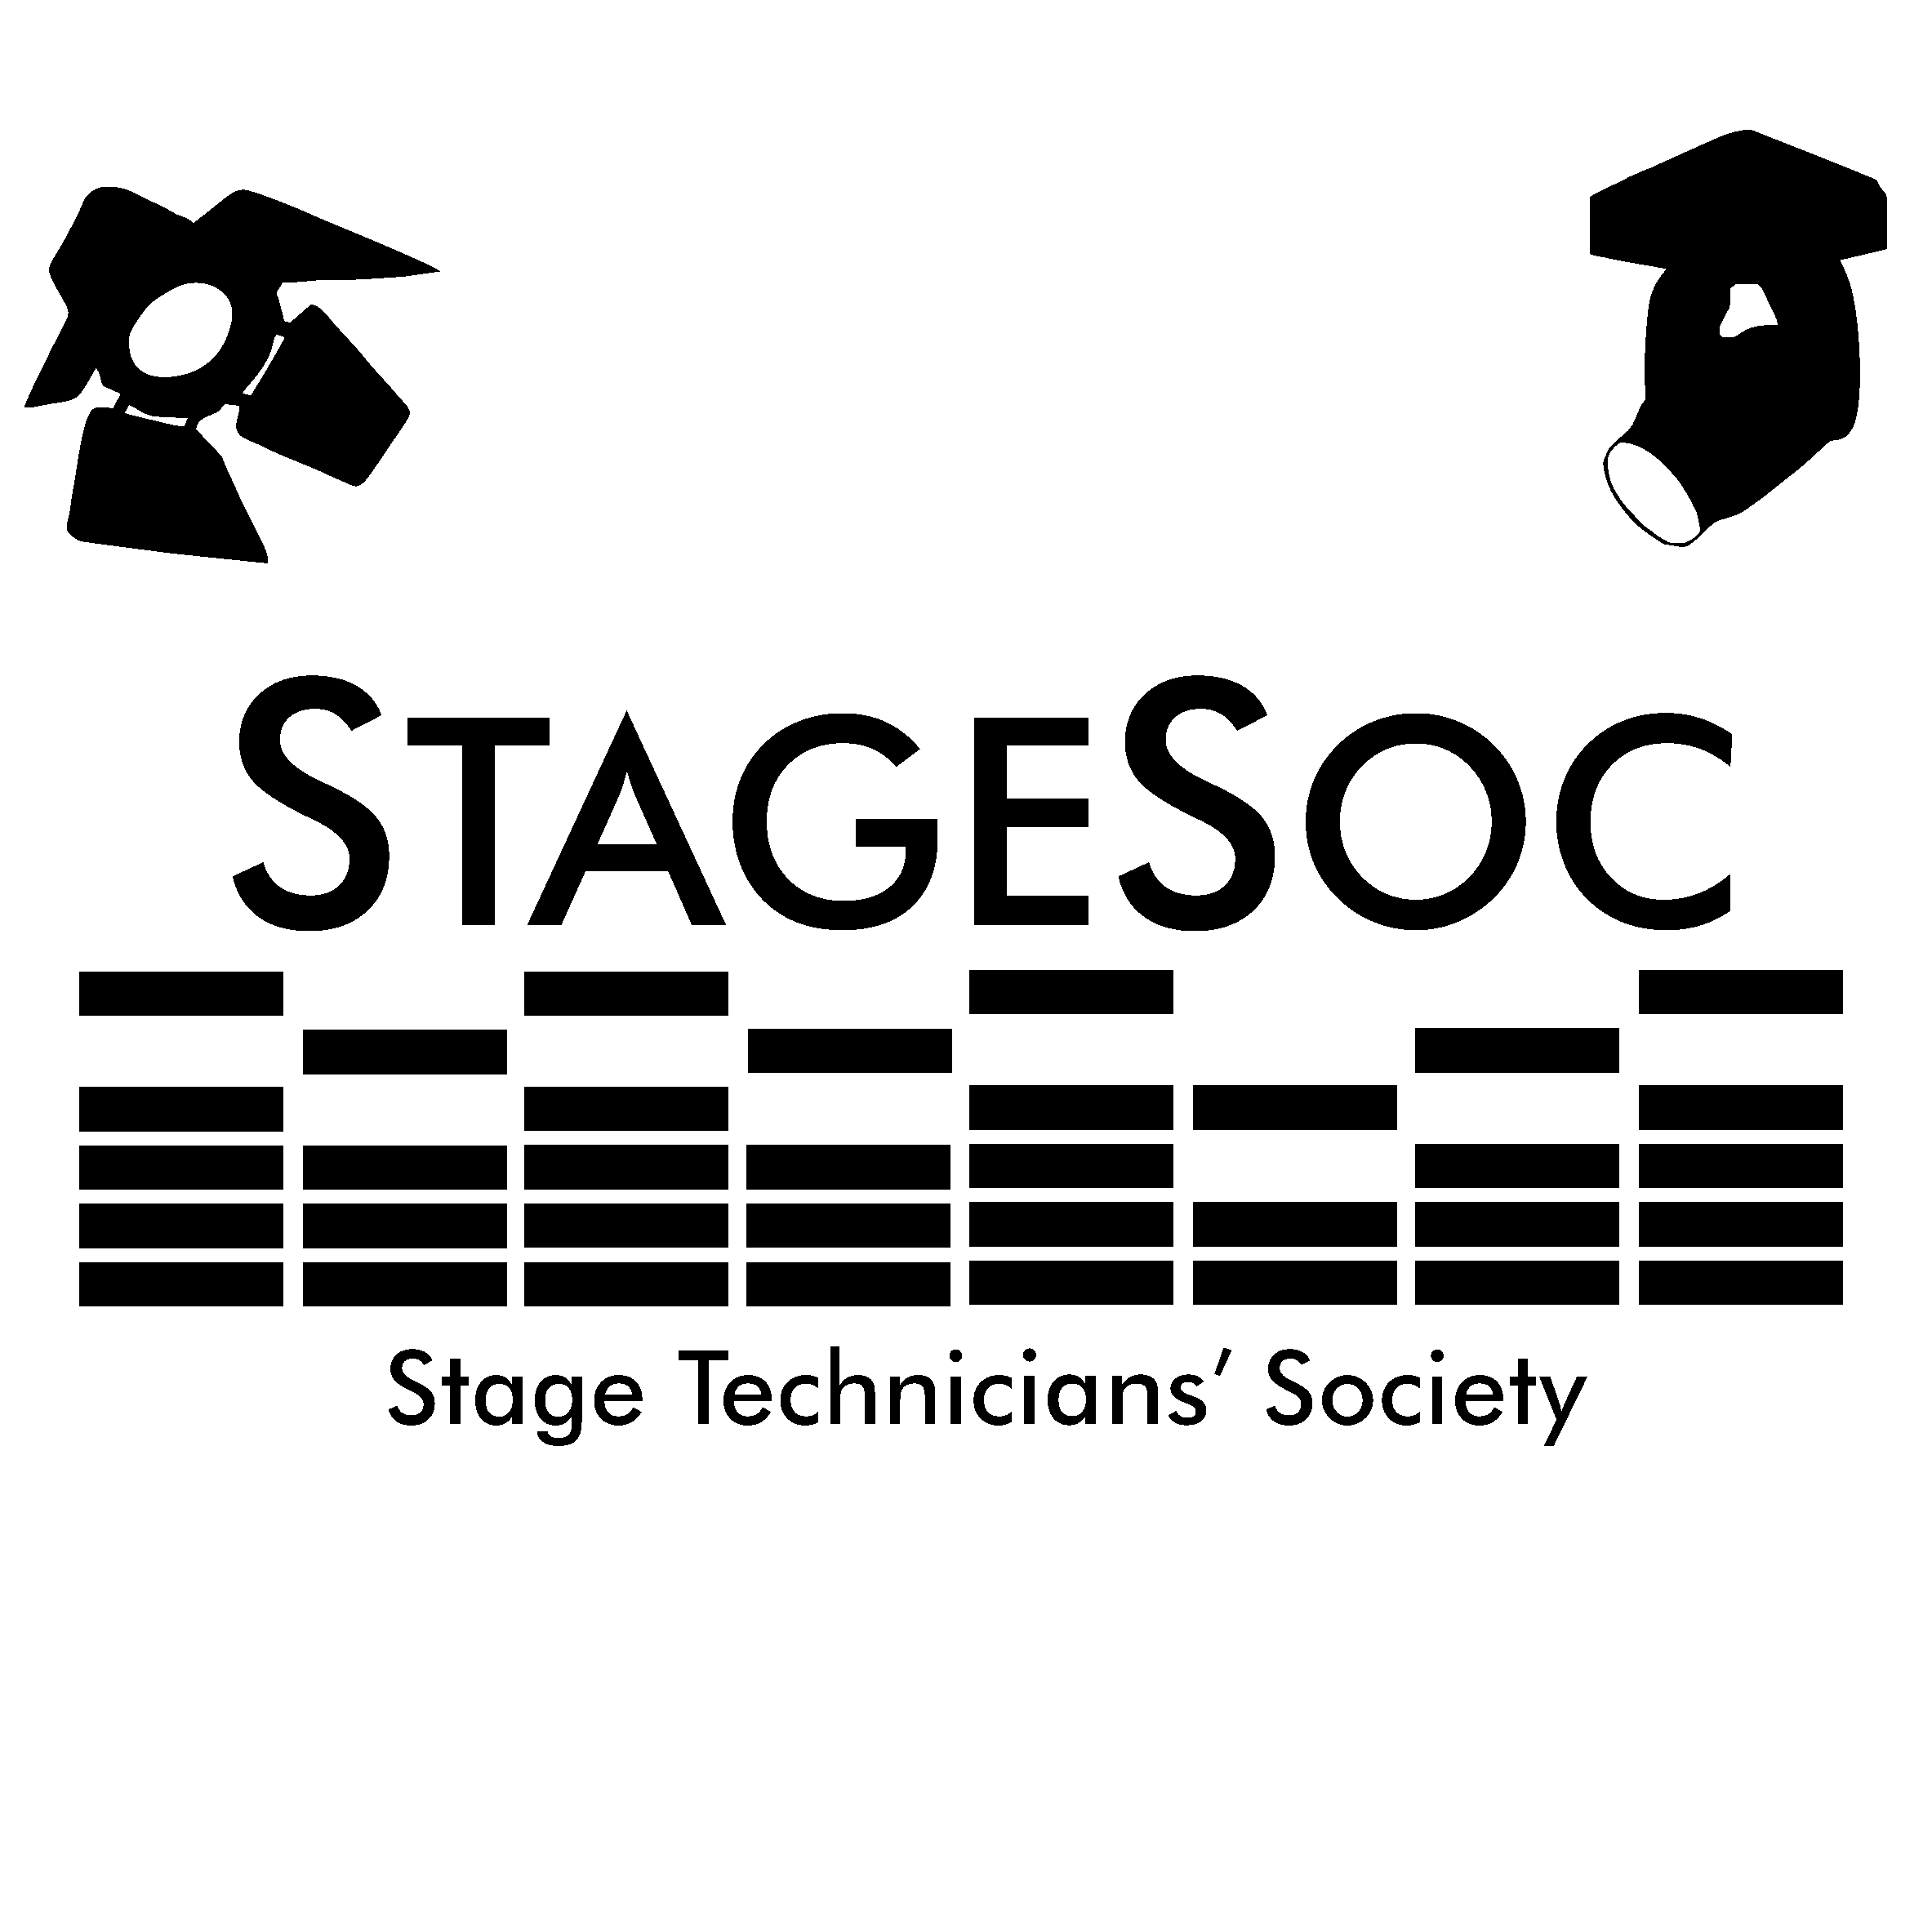 The StageSoc small logo